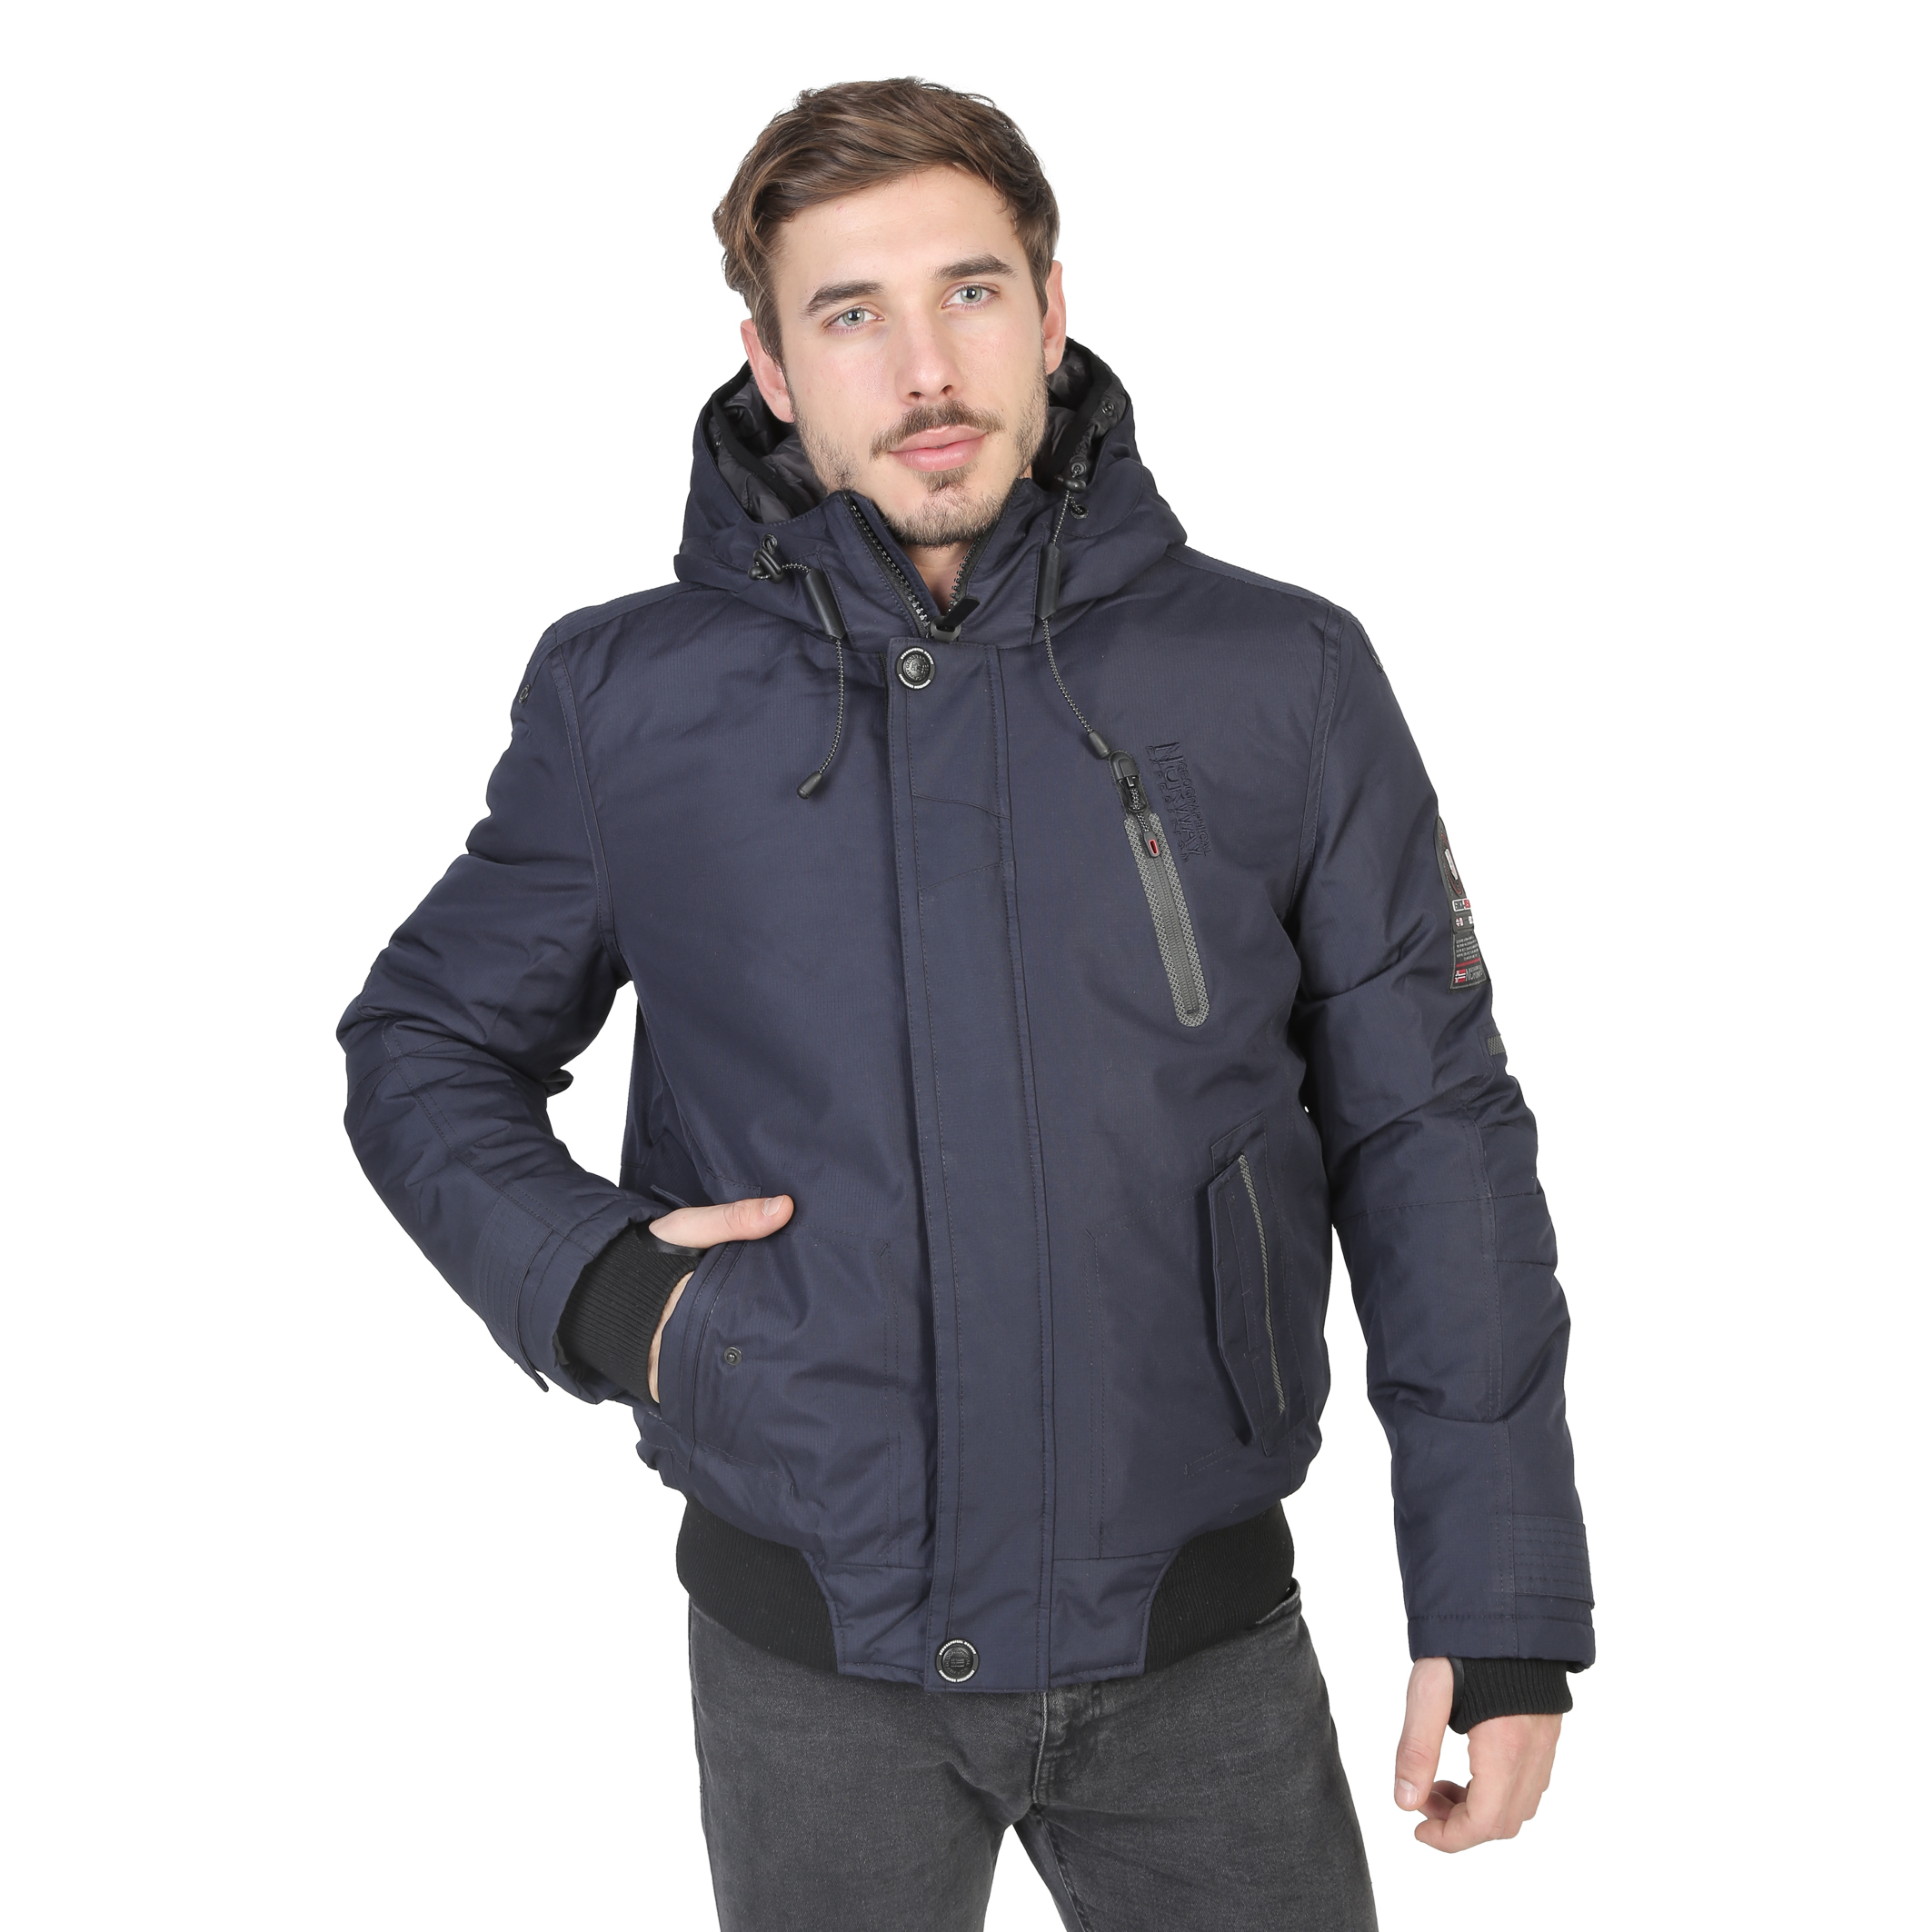 Geographical Norway Balistique_man